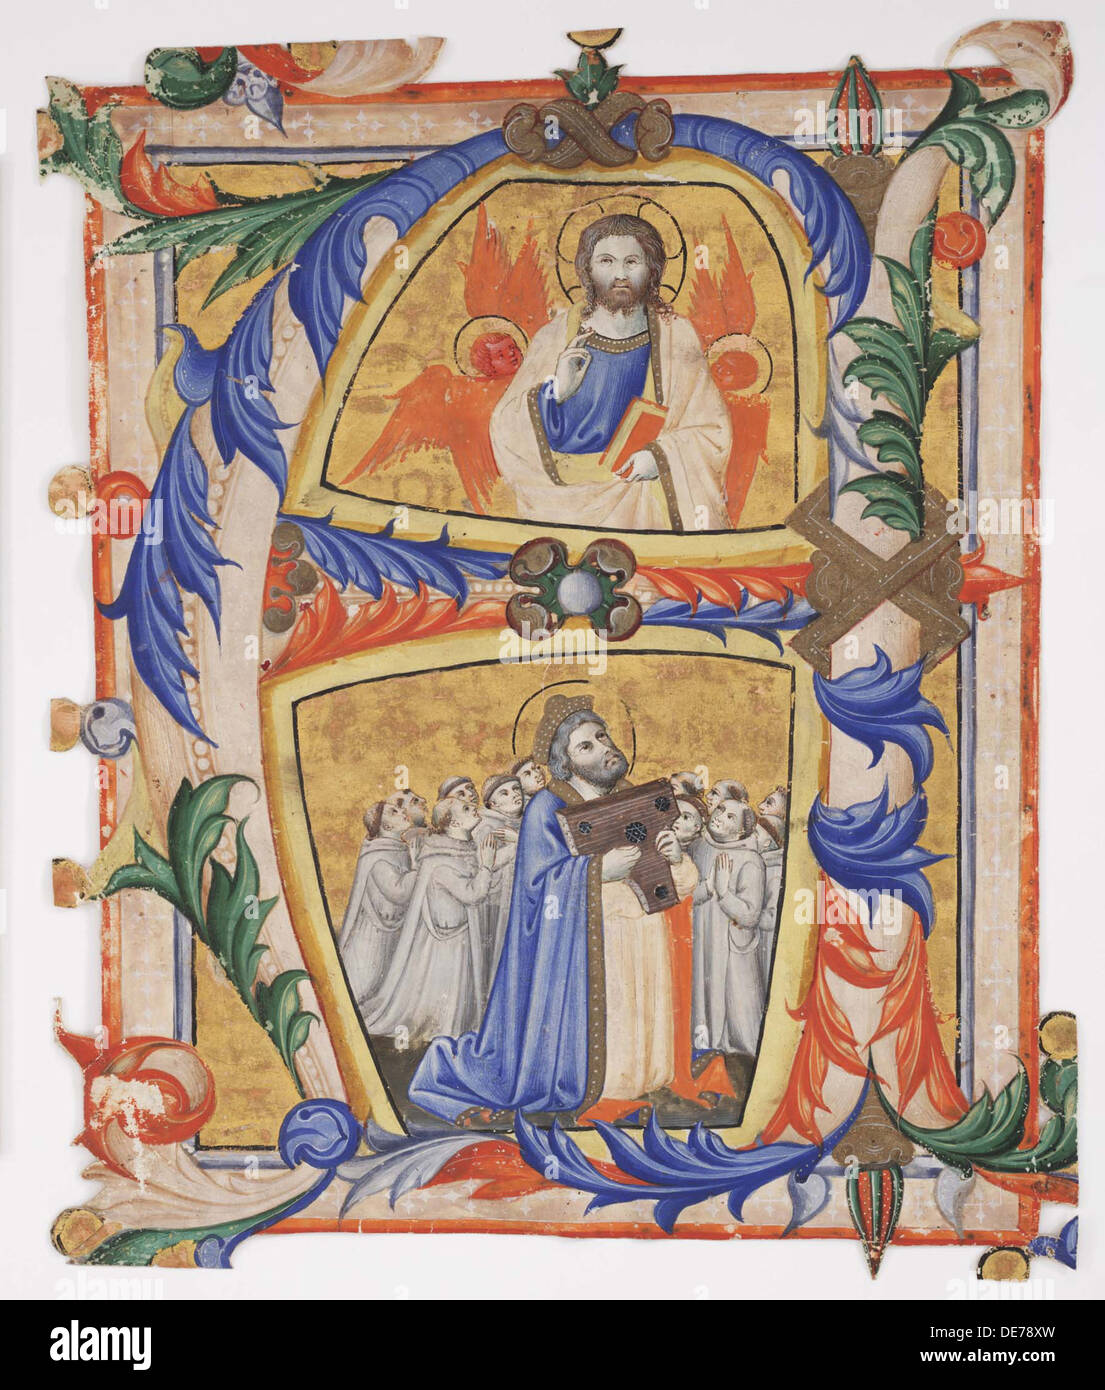 Christ appearing to David and a group of Camaldolese monks, 1390-1410. Artist: Andrea di Bartolo (bef. 1389-1428) - Stock Image